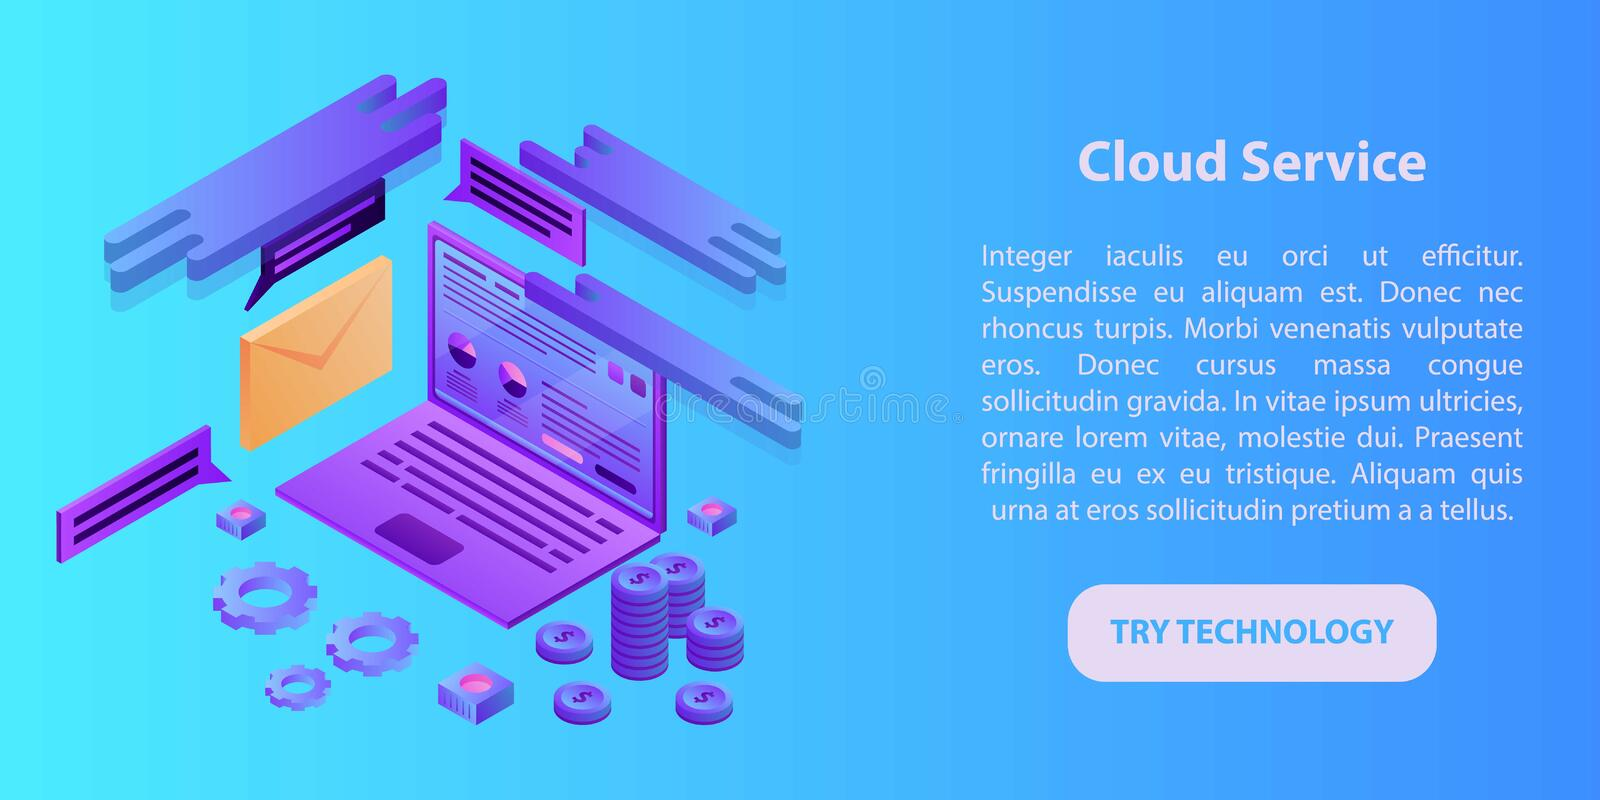 Cloud service concept banner, isometric style stock illustration